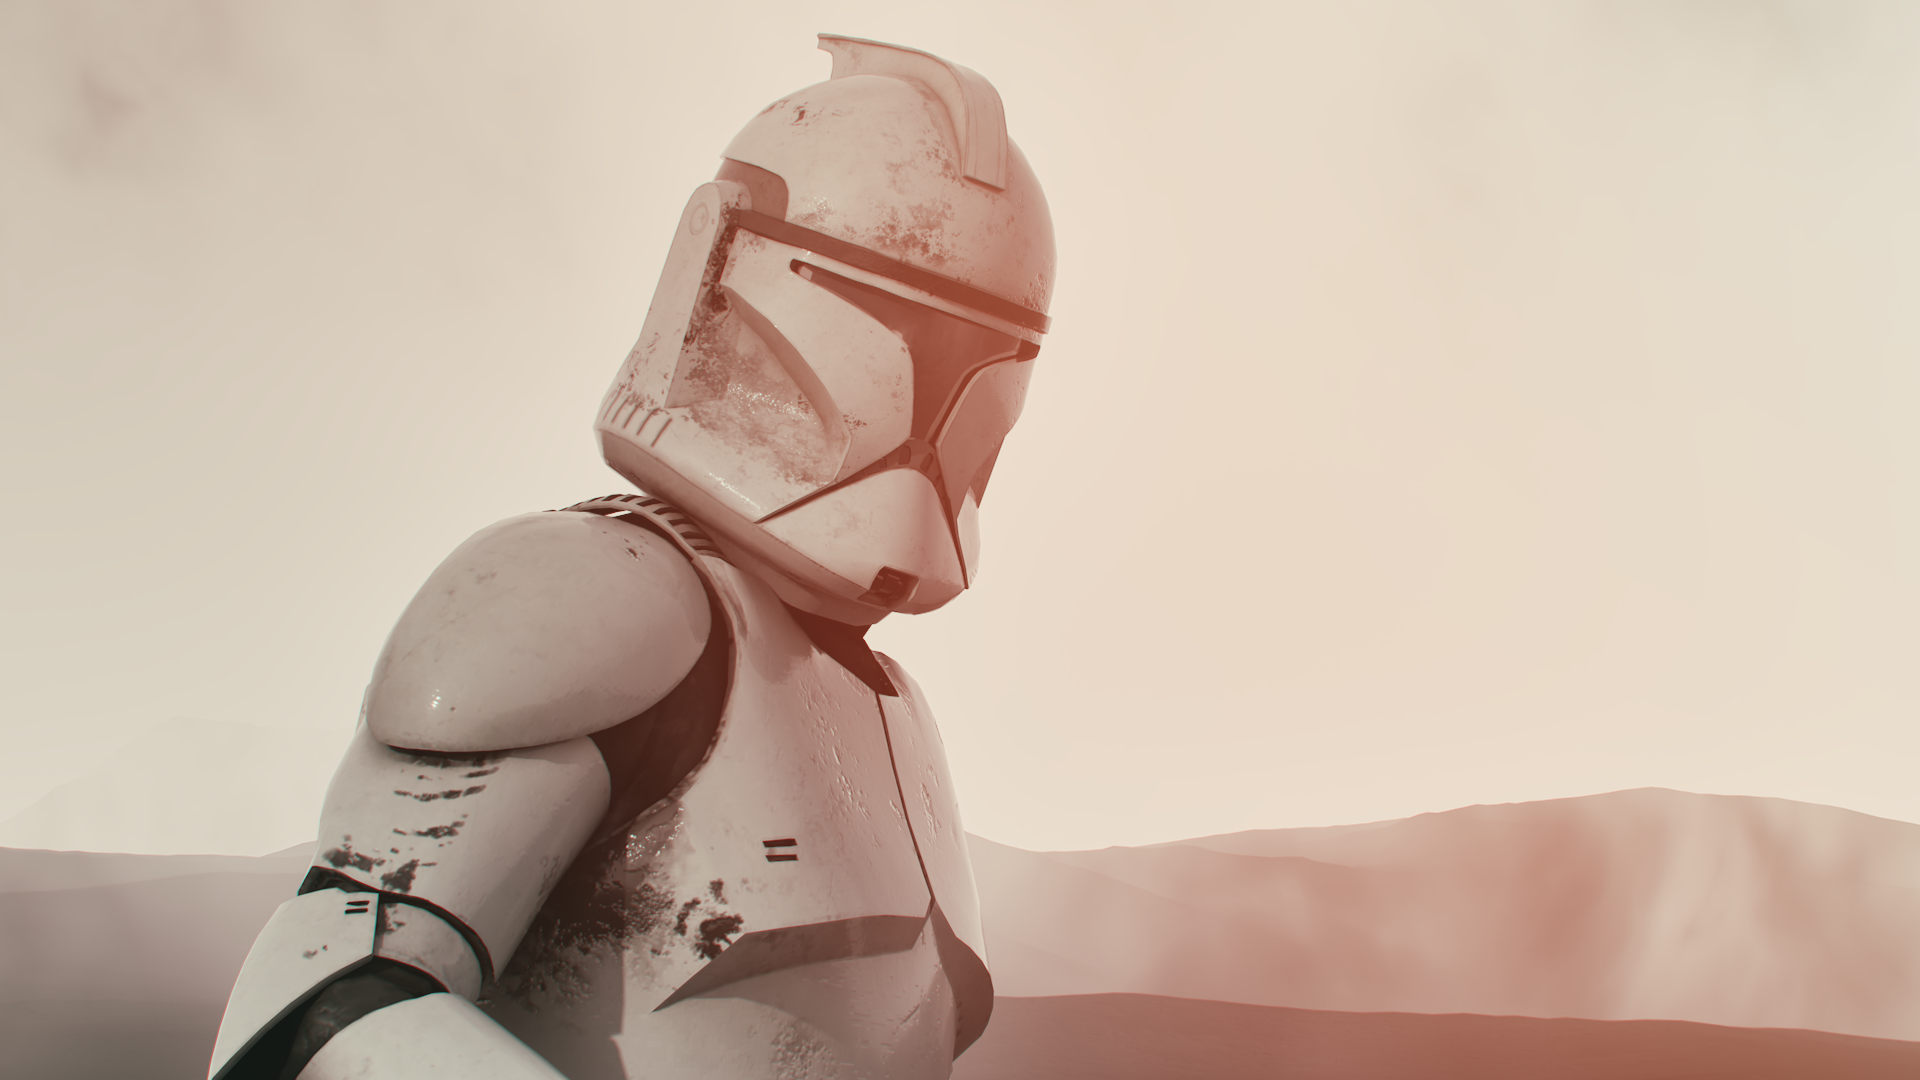 Clone Trooper Phase One Hd Wallpaper Background Image